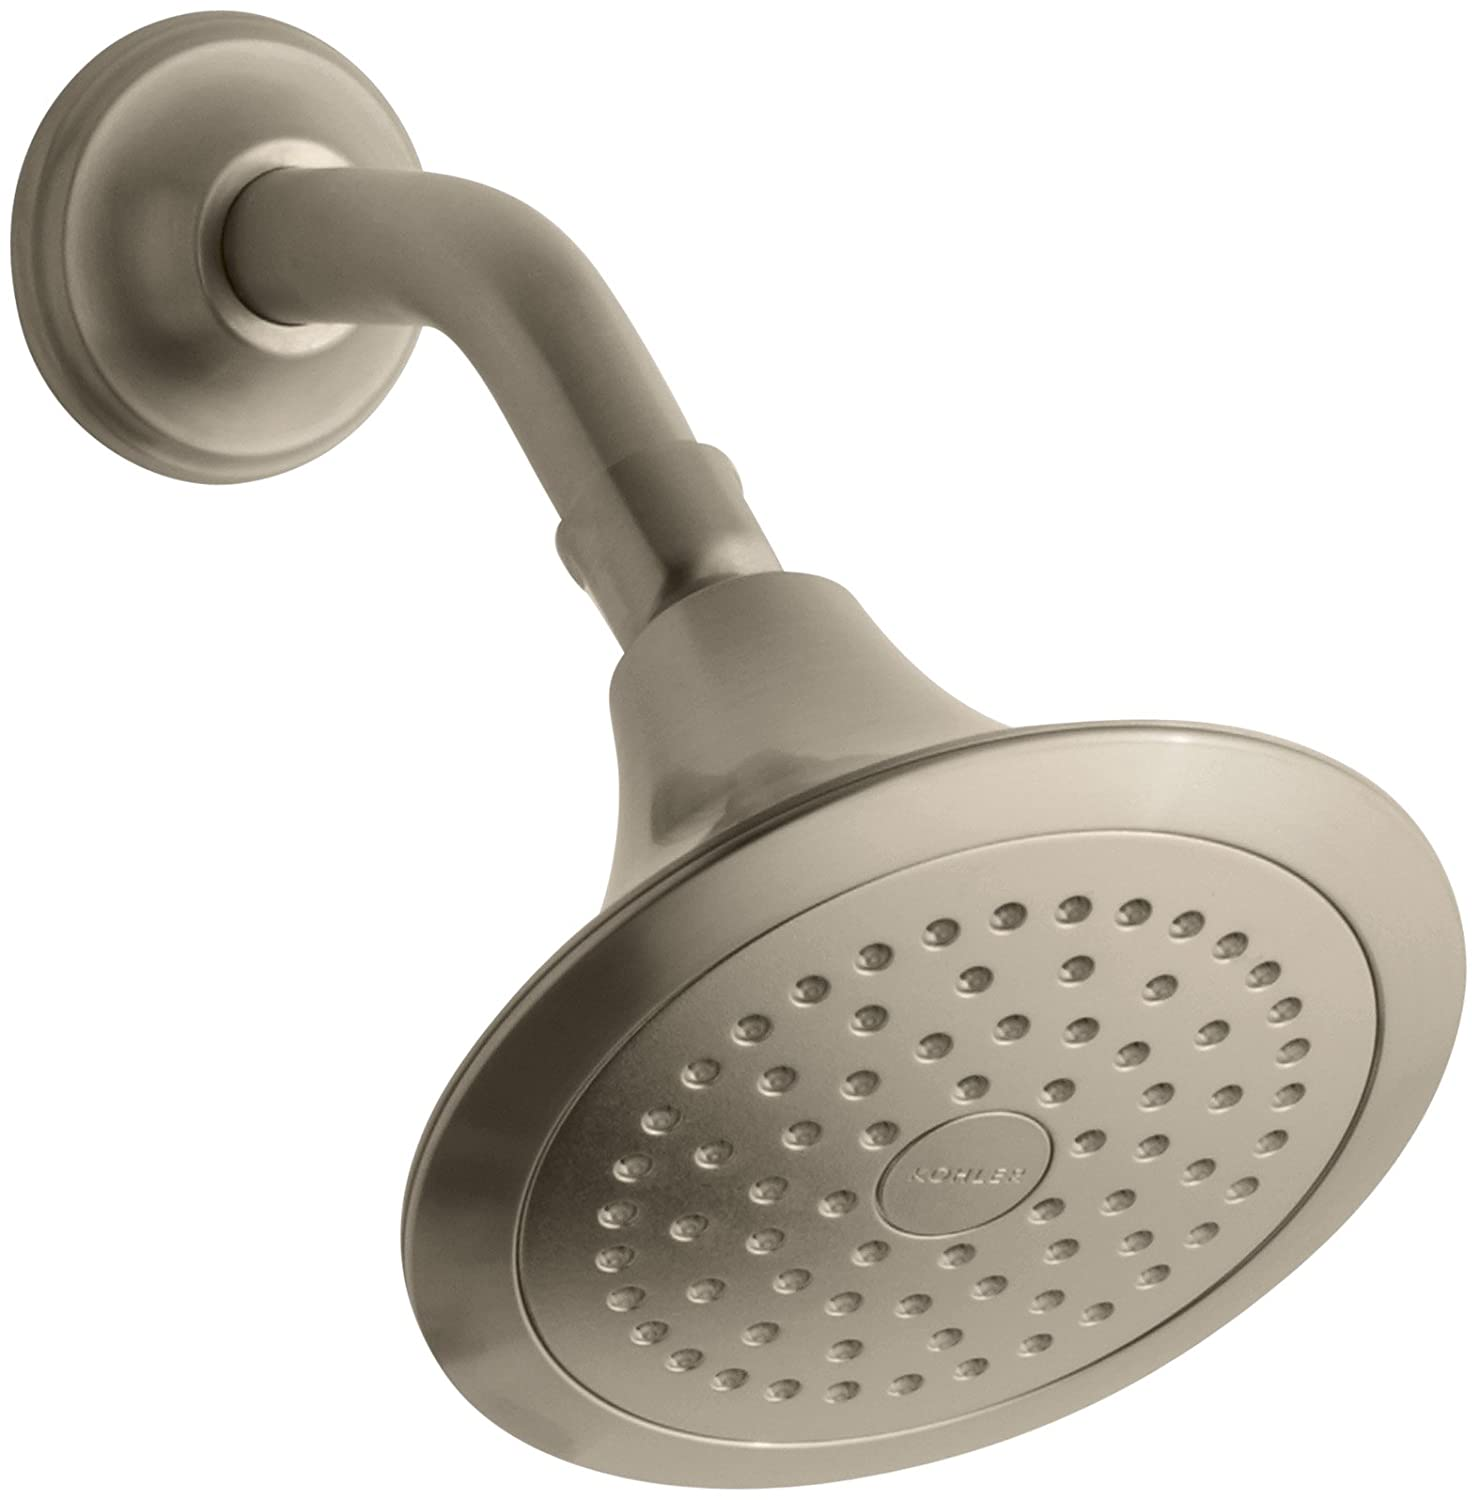 Kohler K-10282-AK-G Forté Single-Function Katalyst Showerhead, Brushed Chrome